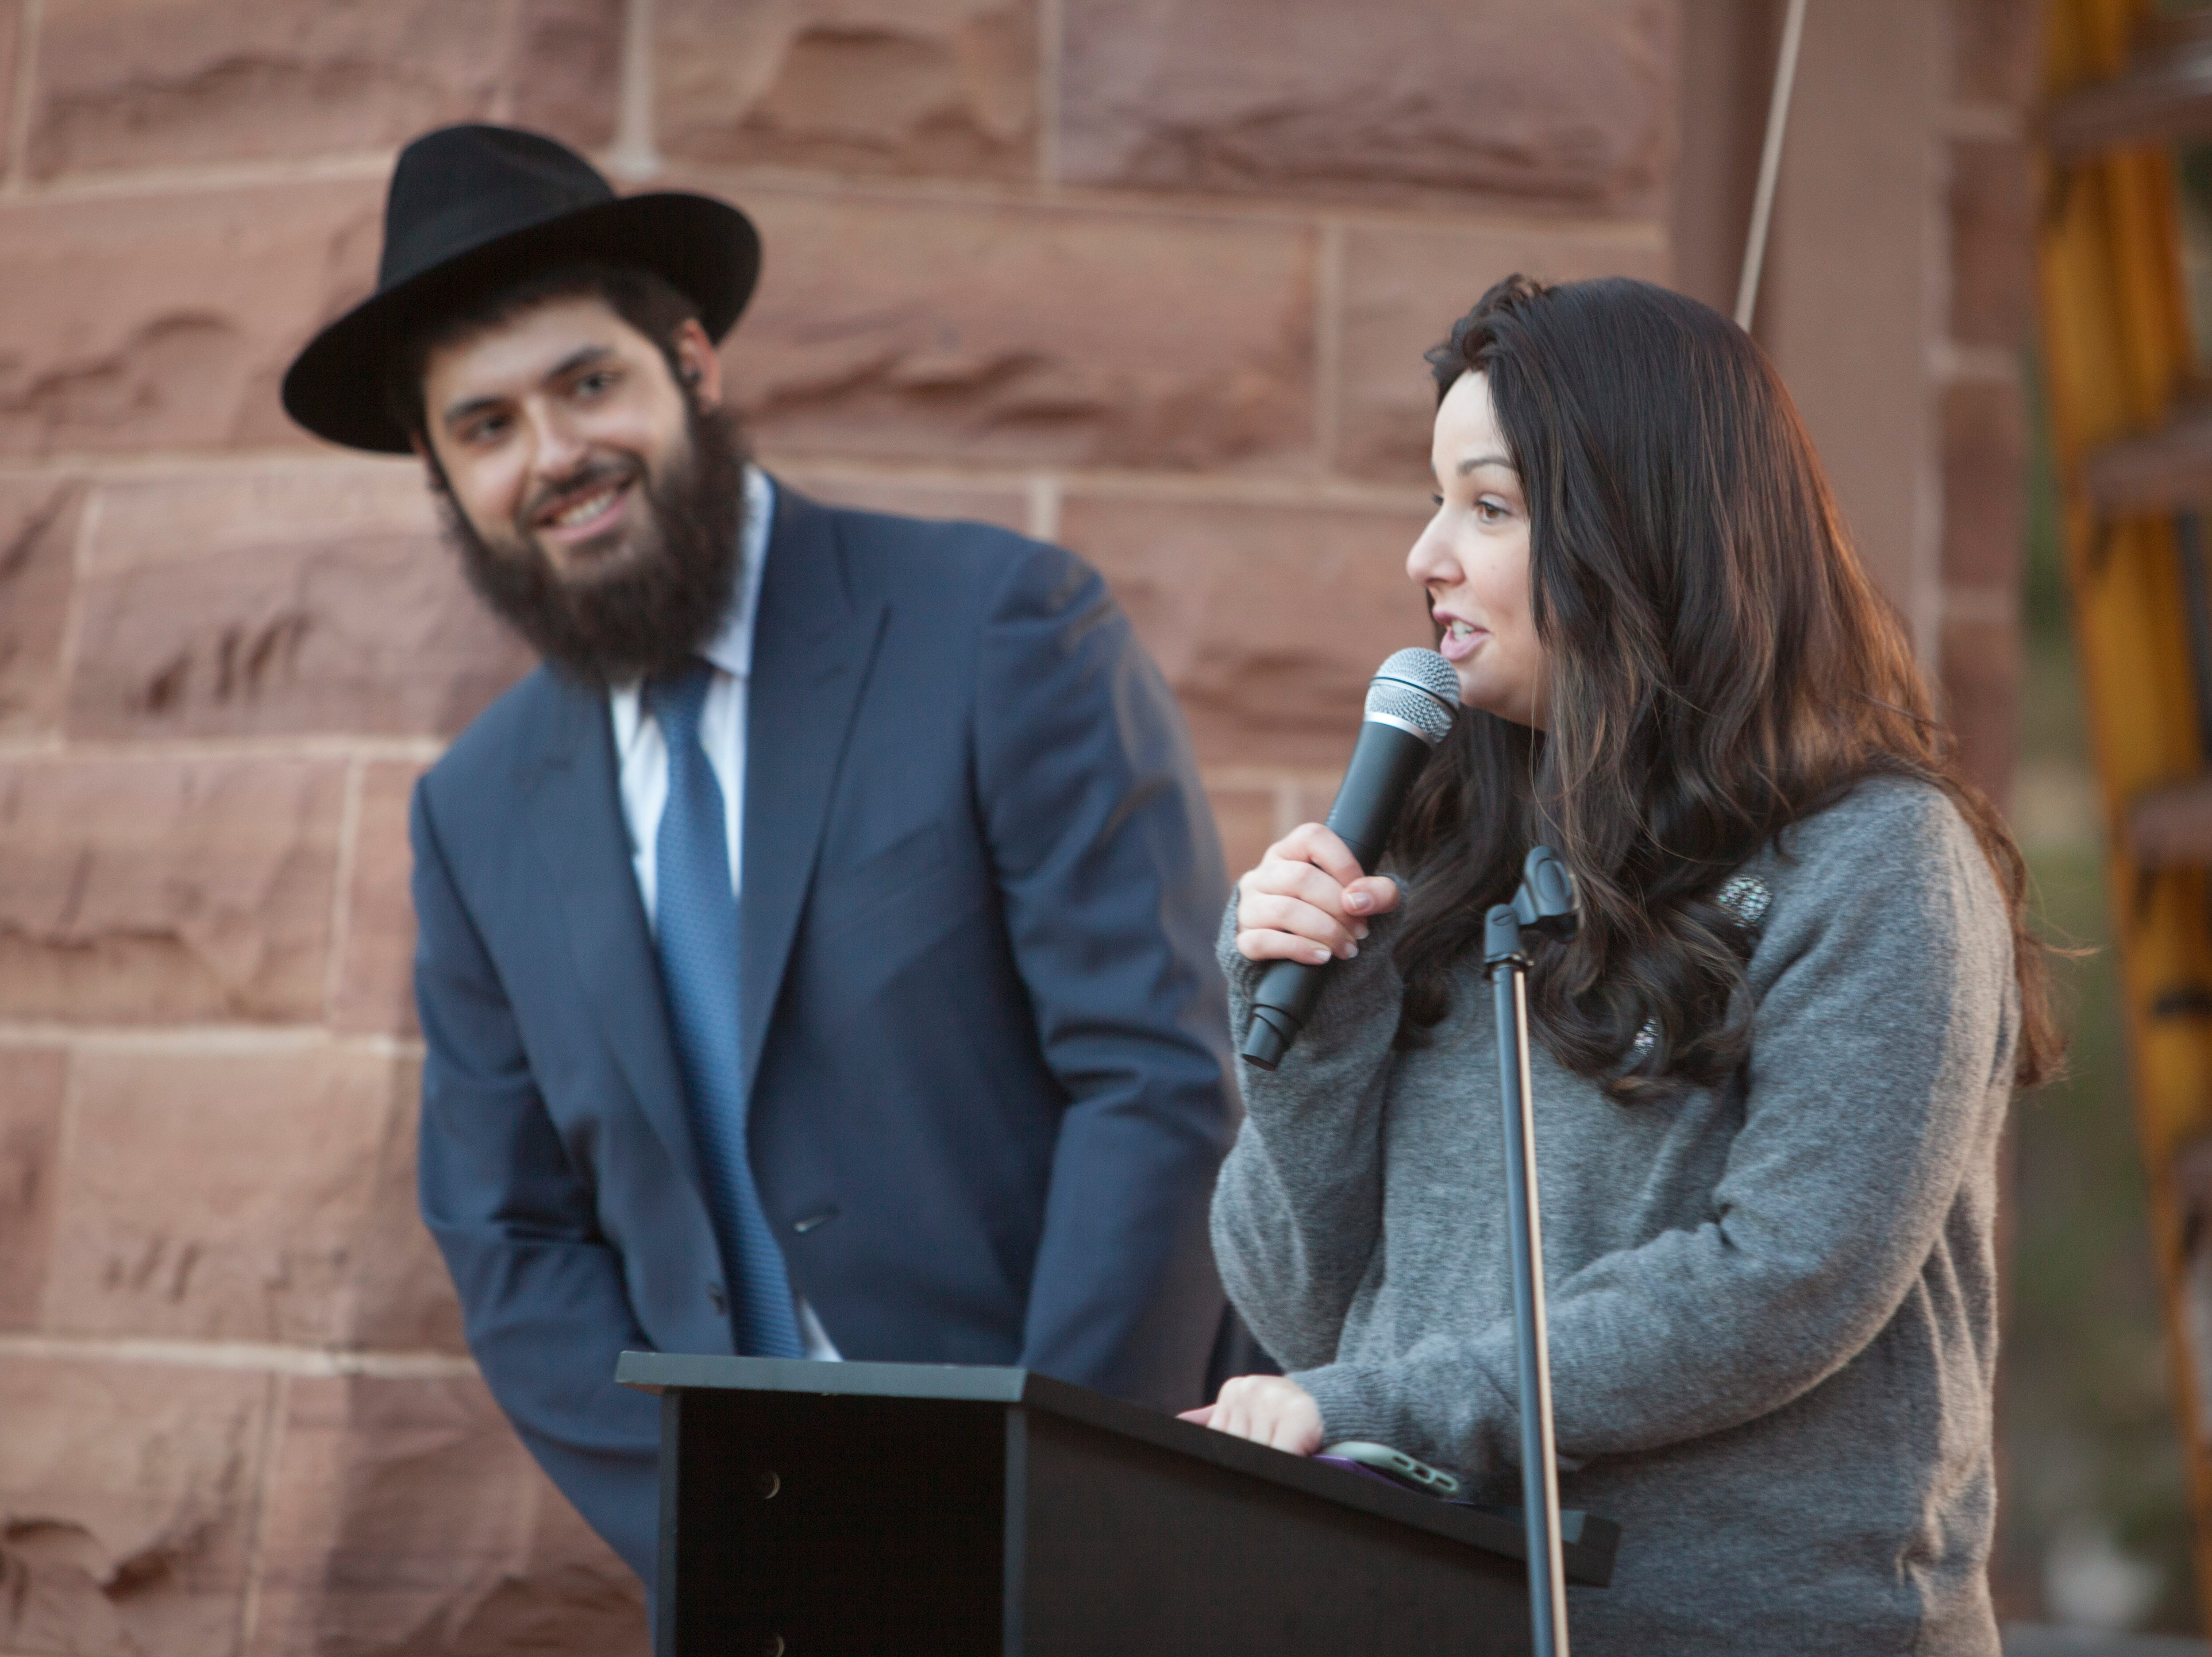 Under the direction of Rabbi Mendy Cohen members of the St. George community gather at town square to celebrate Hanukkah Sunday, Dec. 9, 2018.